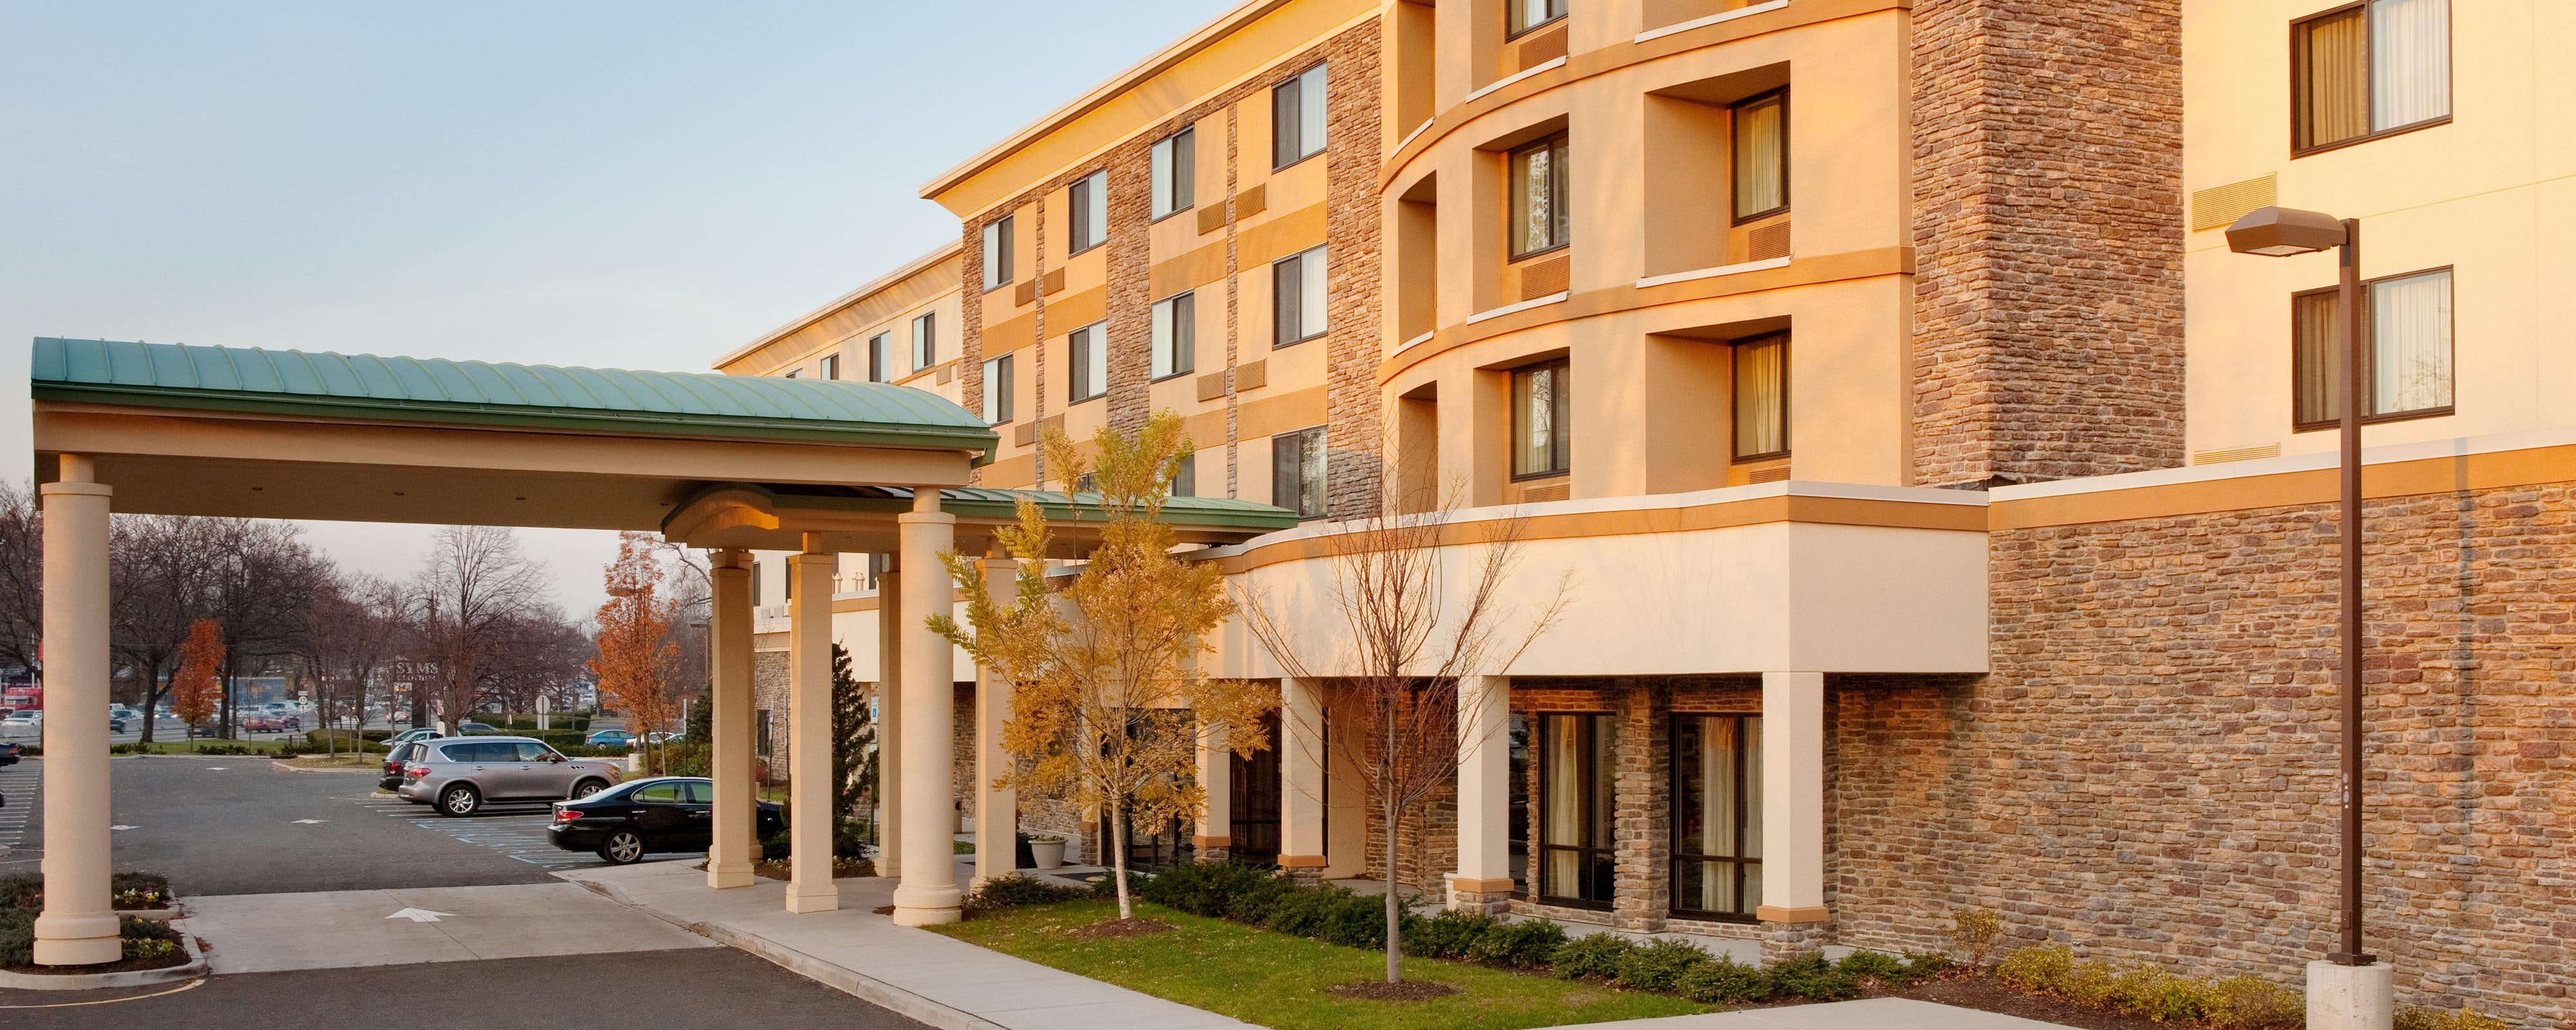 Hotels in Paramus, NJ and Bergen County, NJ | Courtyard Paramus